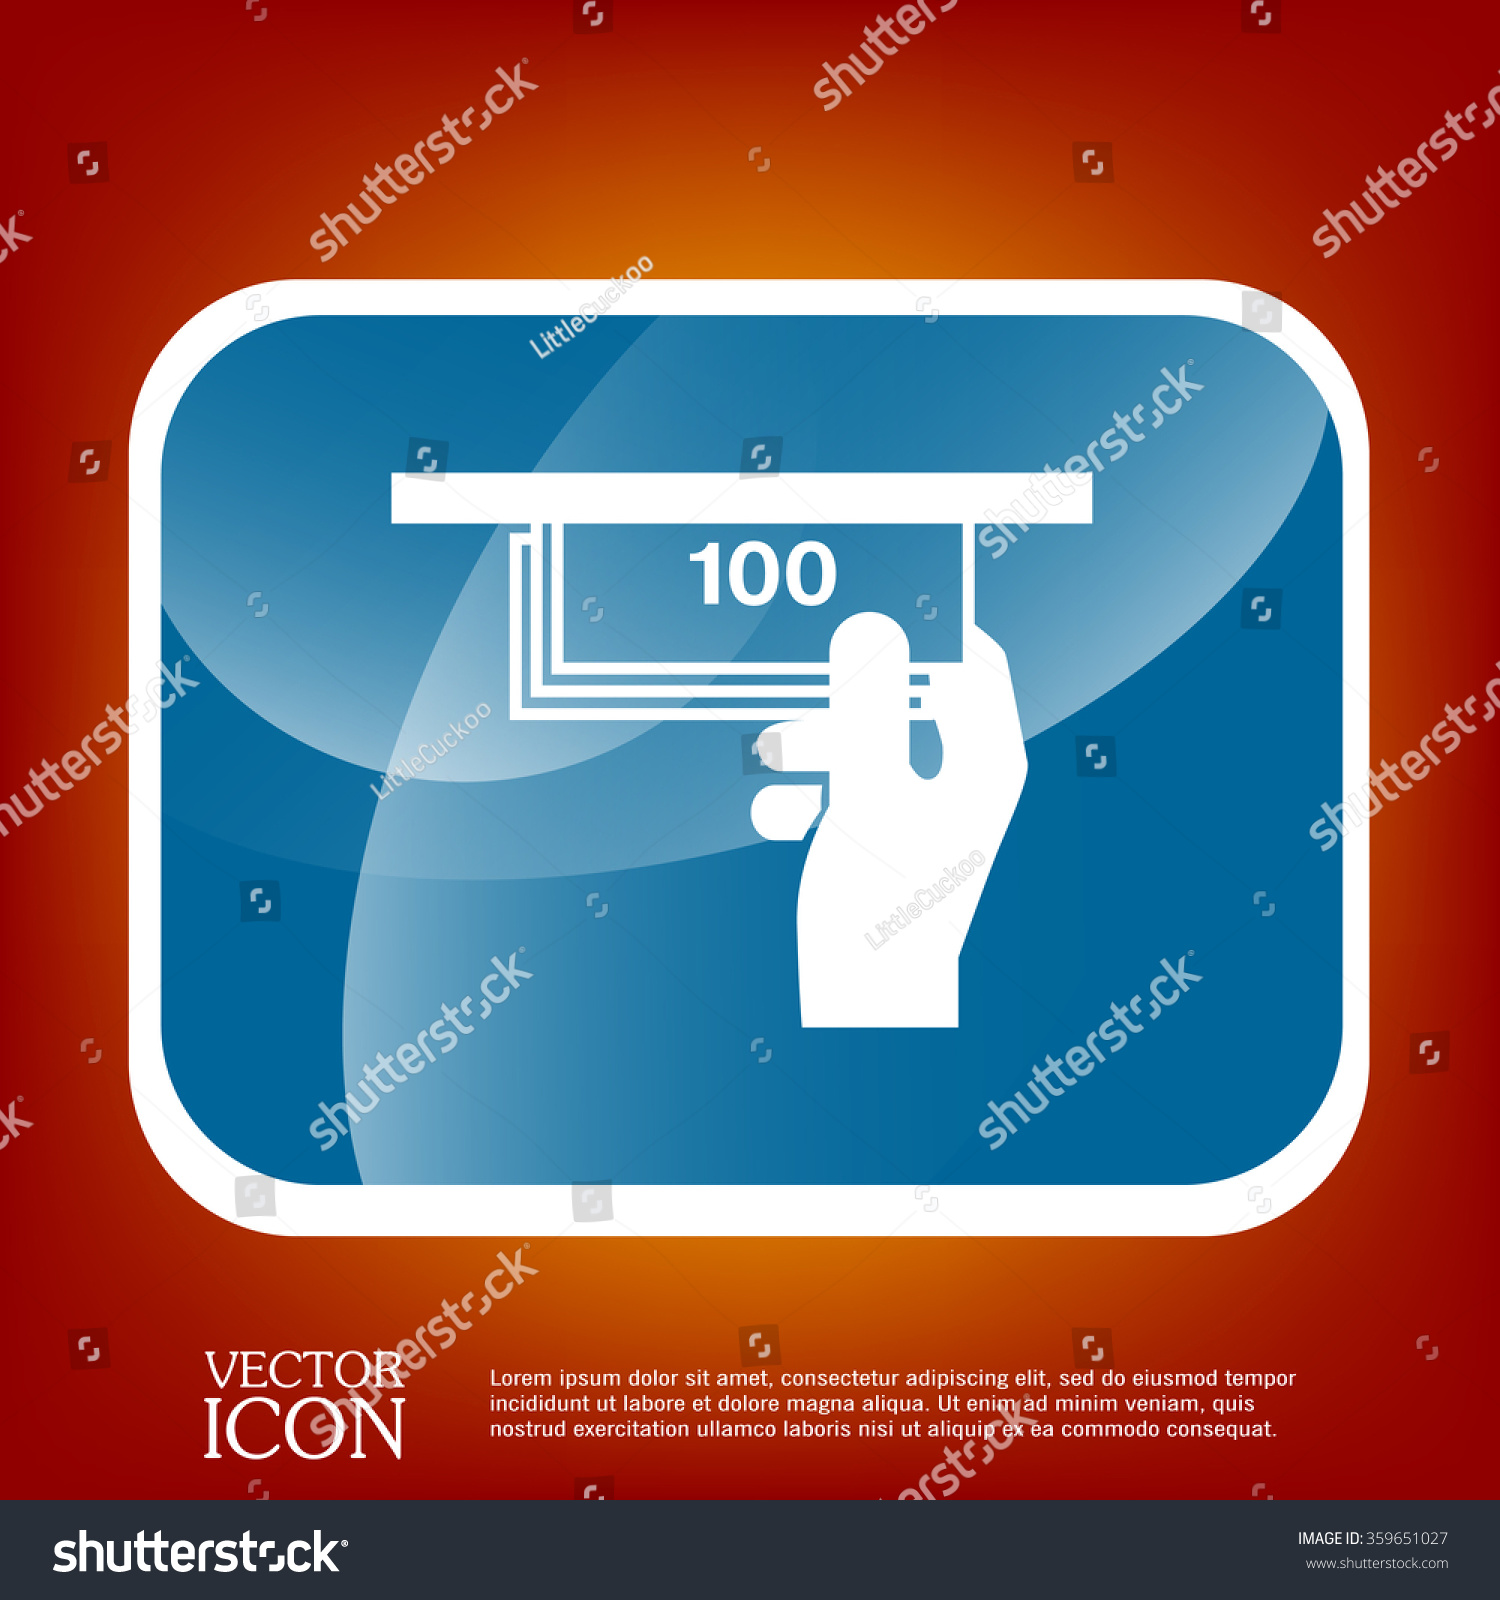 Advanced nutrients stock symbol gallery symbol and sign ideas how to do a tm symbol image collections symbol and sign ideas money atm symbol issuing buycottarizona